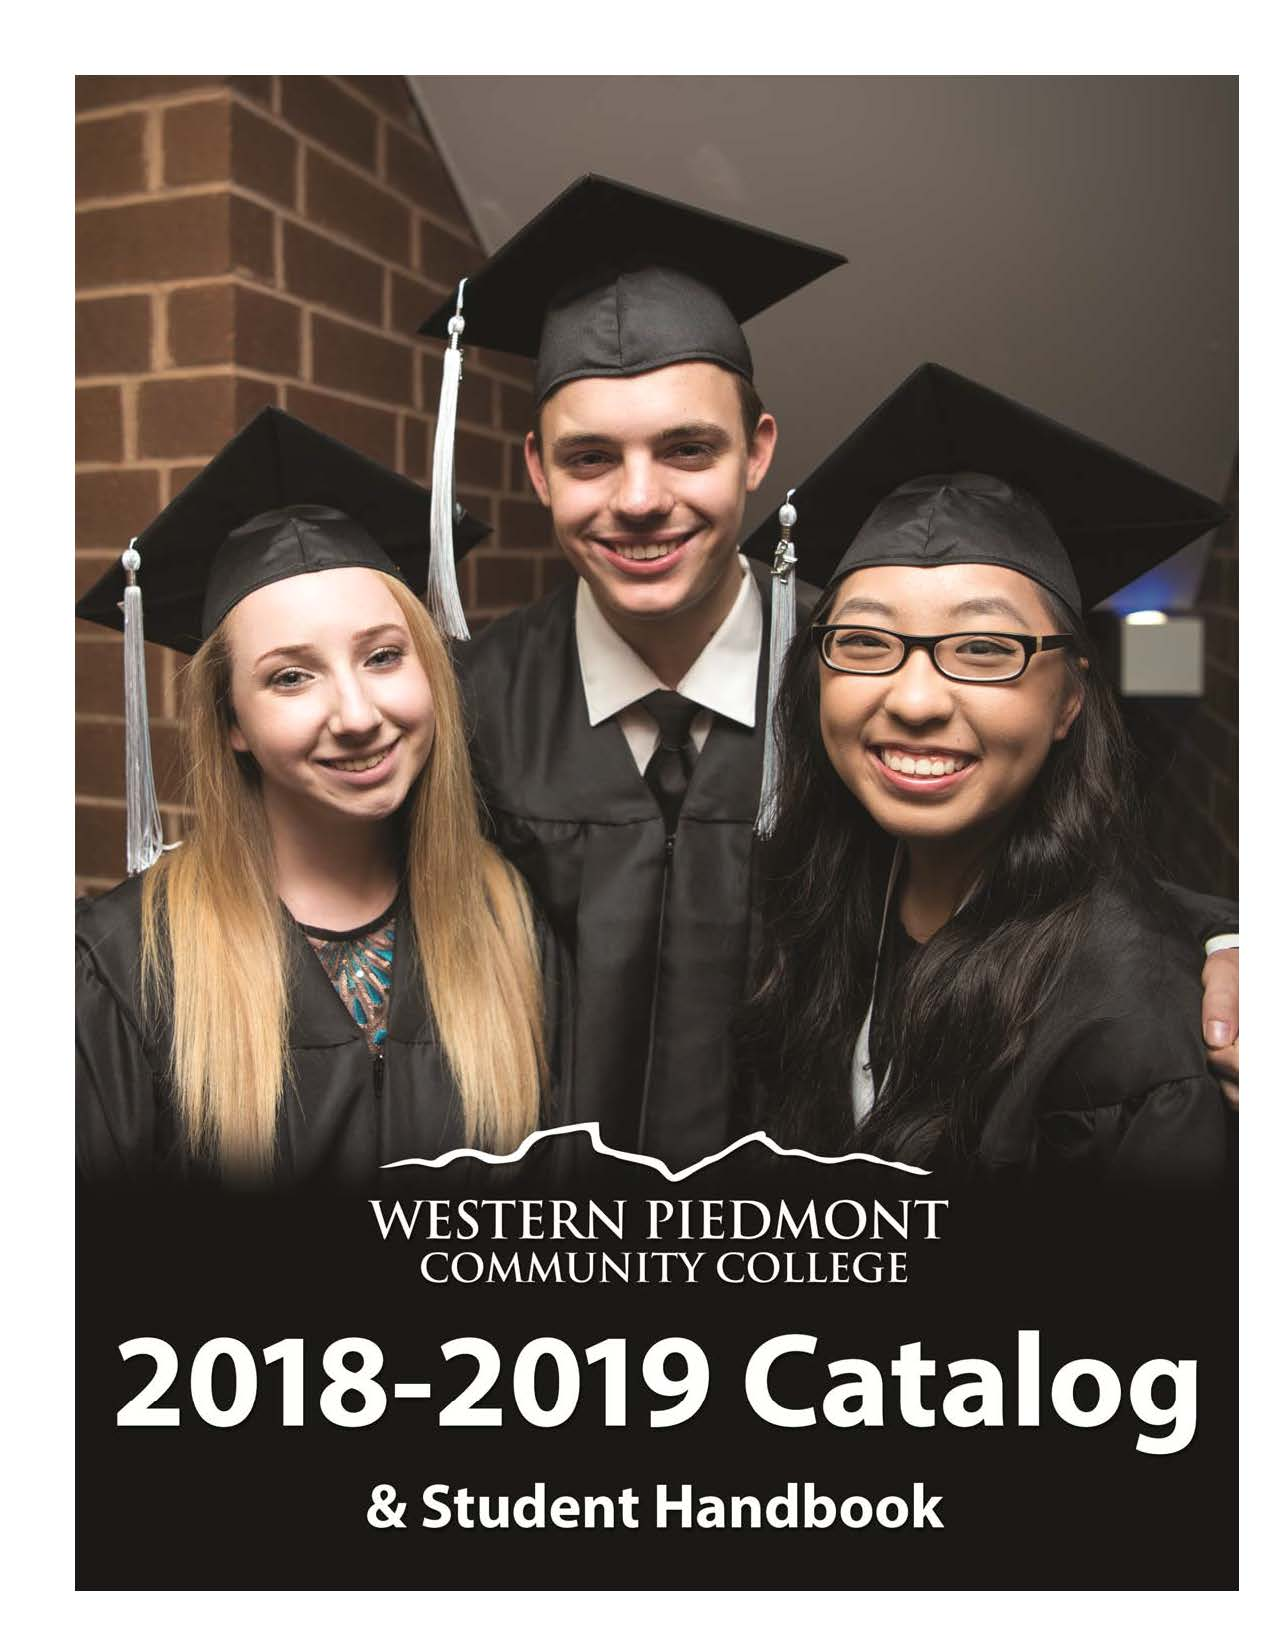 2018-2019 WPCC Catalog cover showing students at graduation.